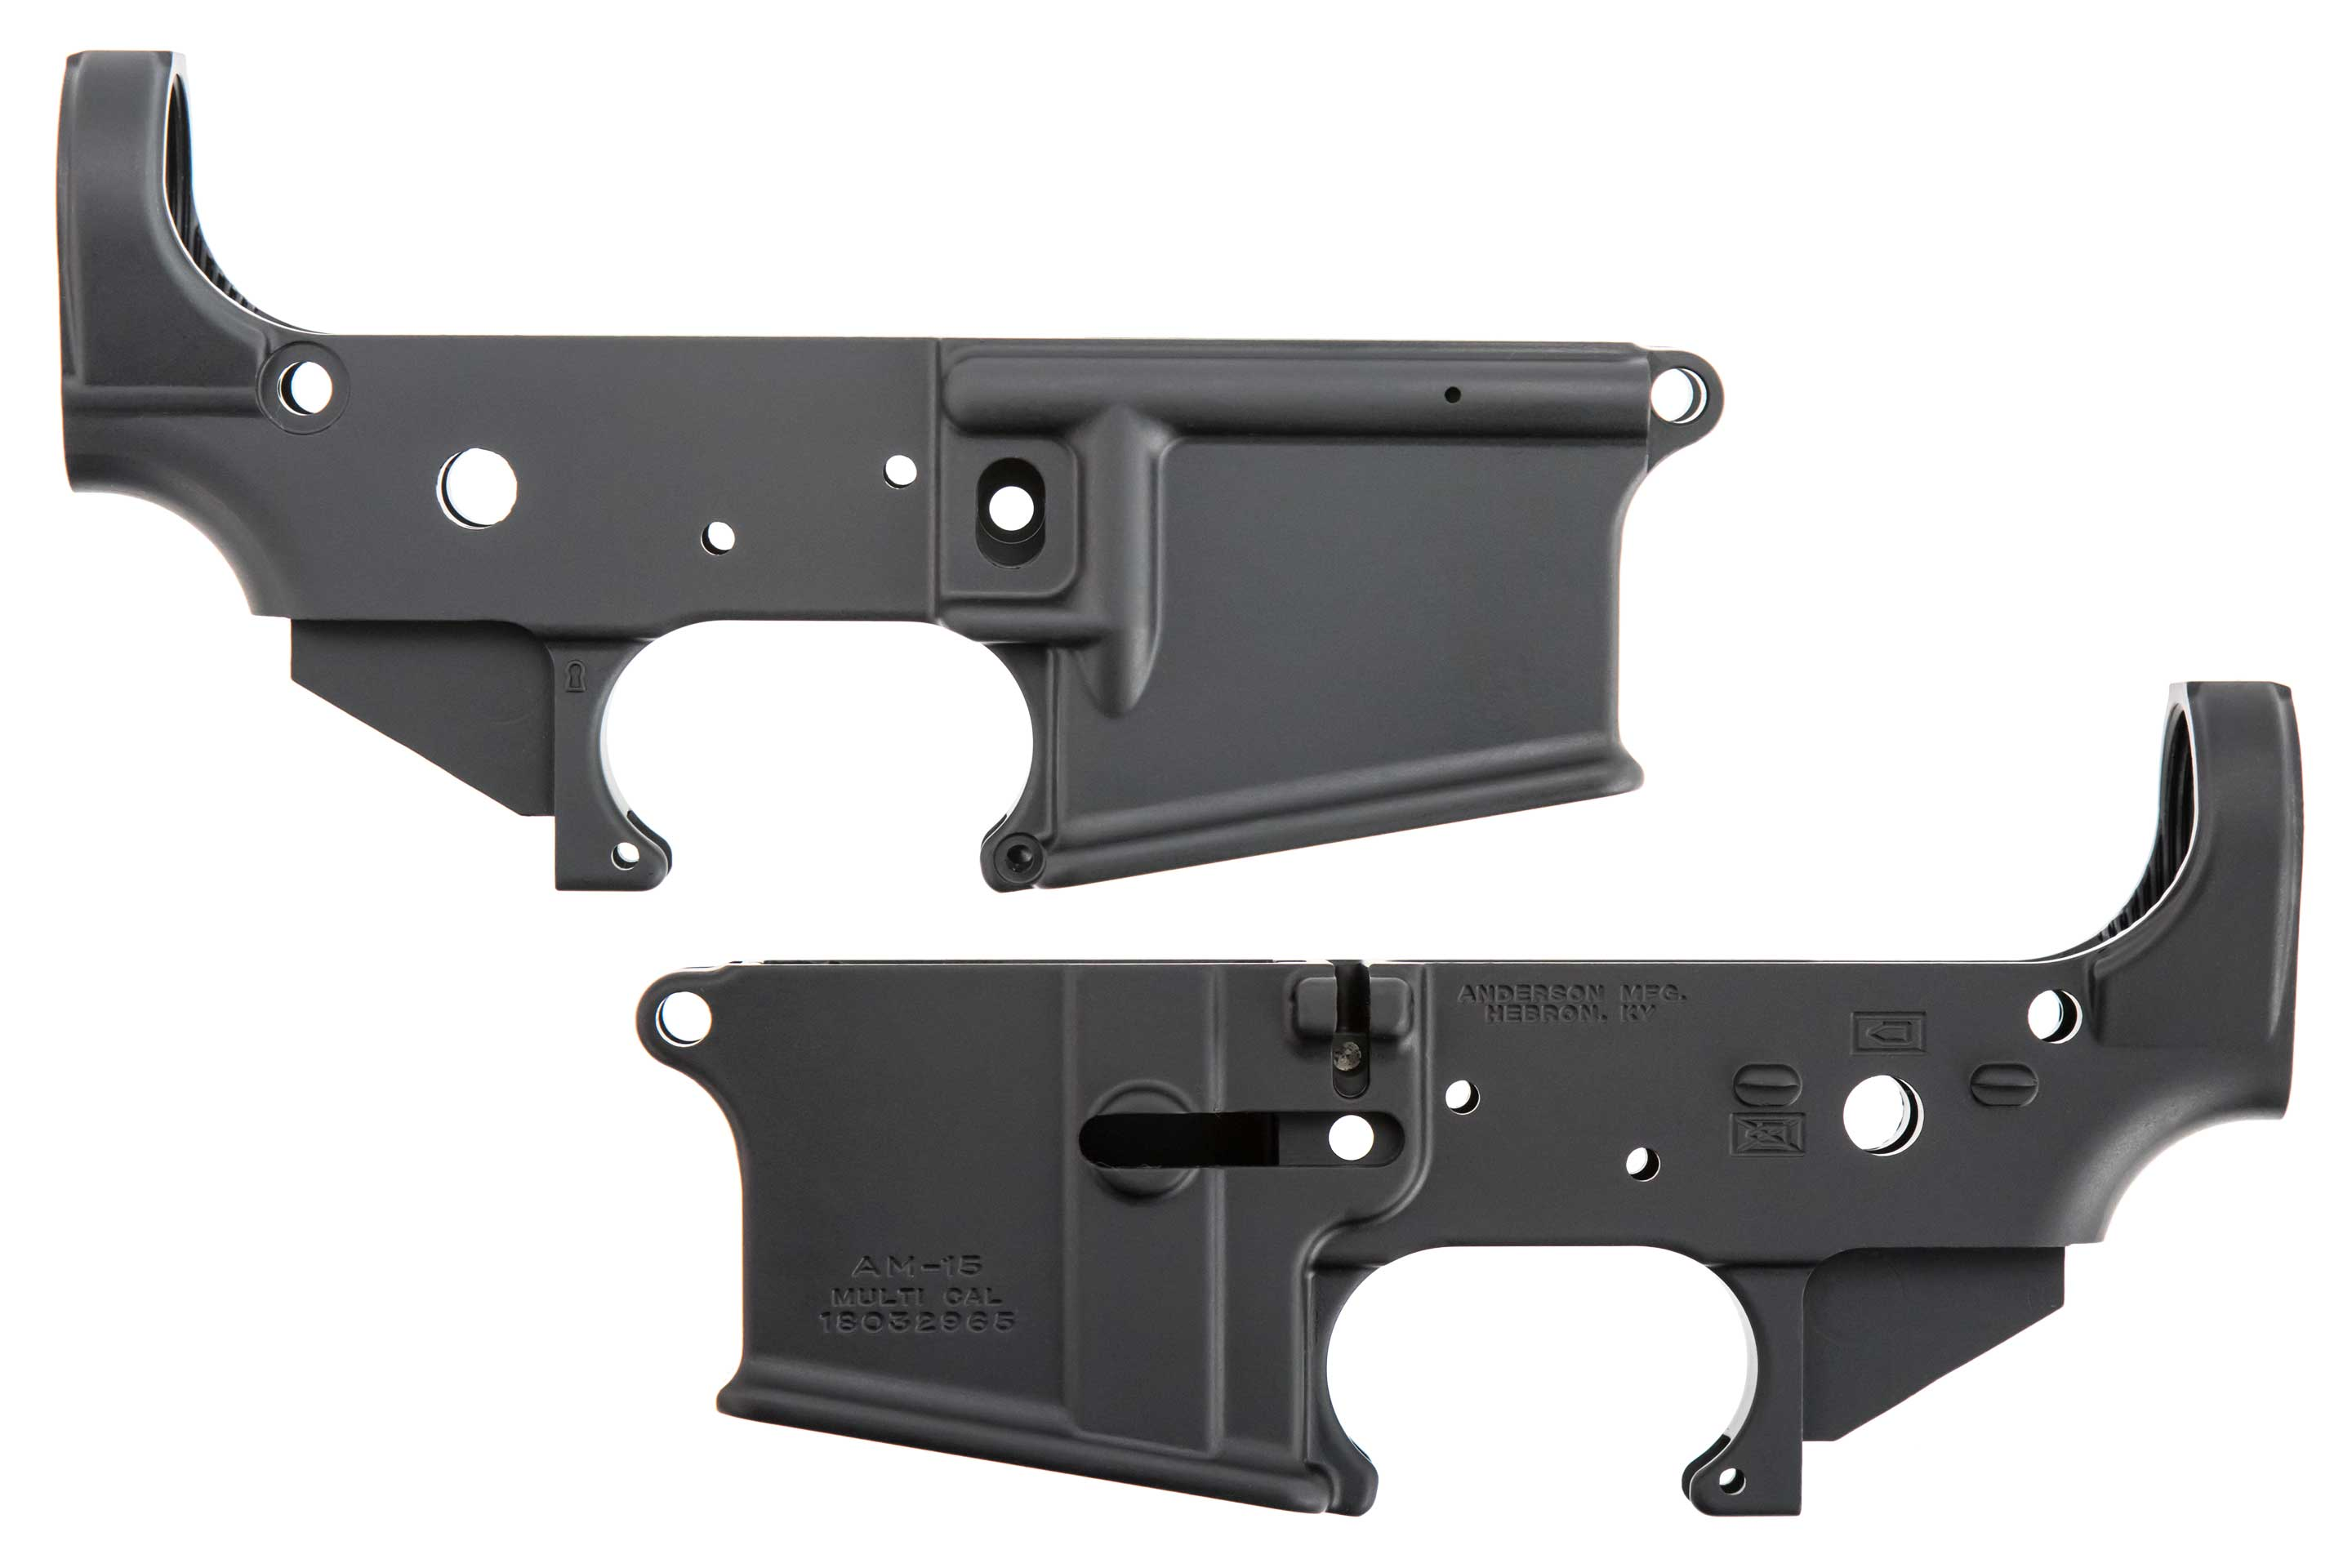 AM-15 Lower Receiver 2-pack